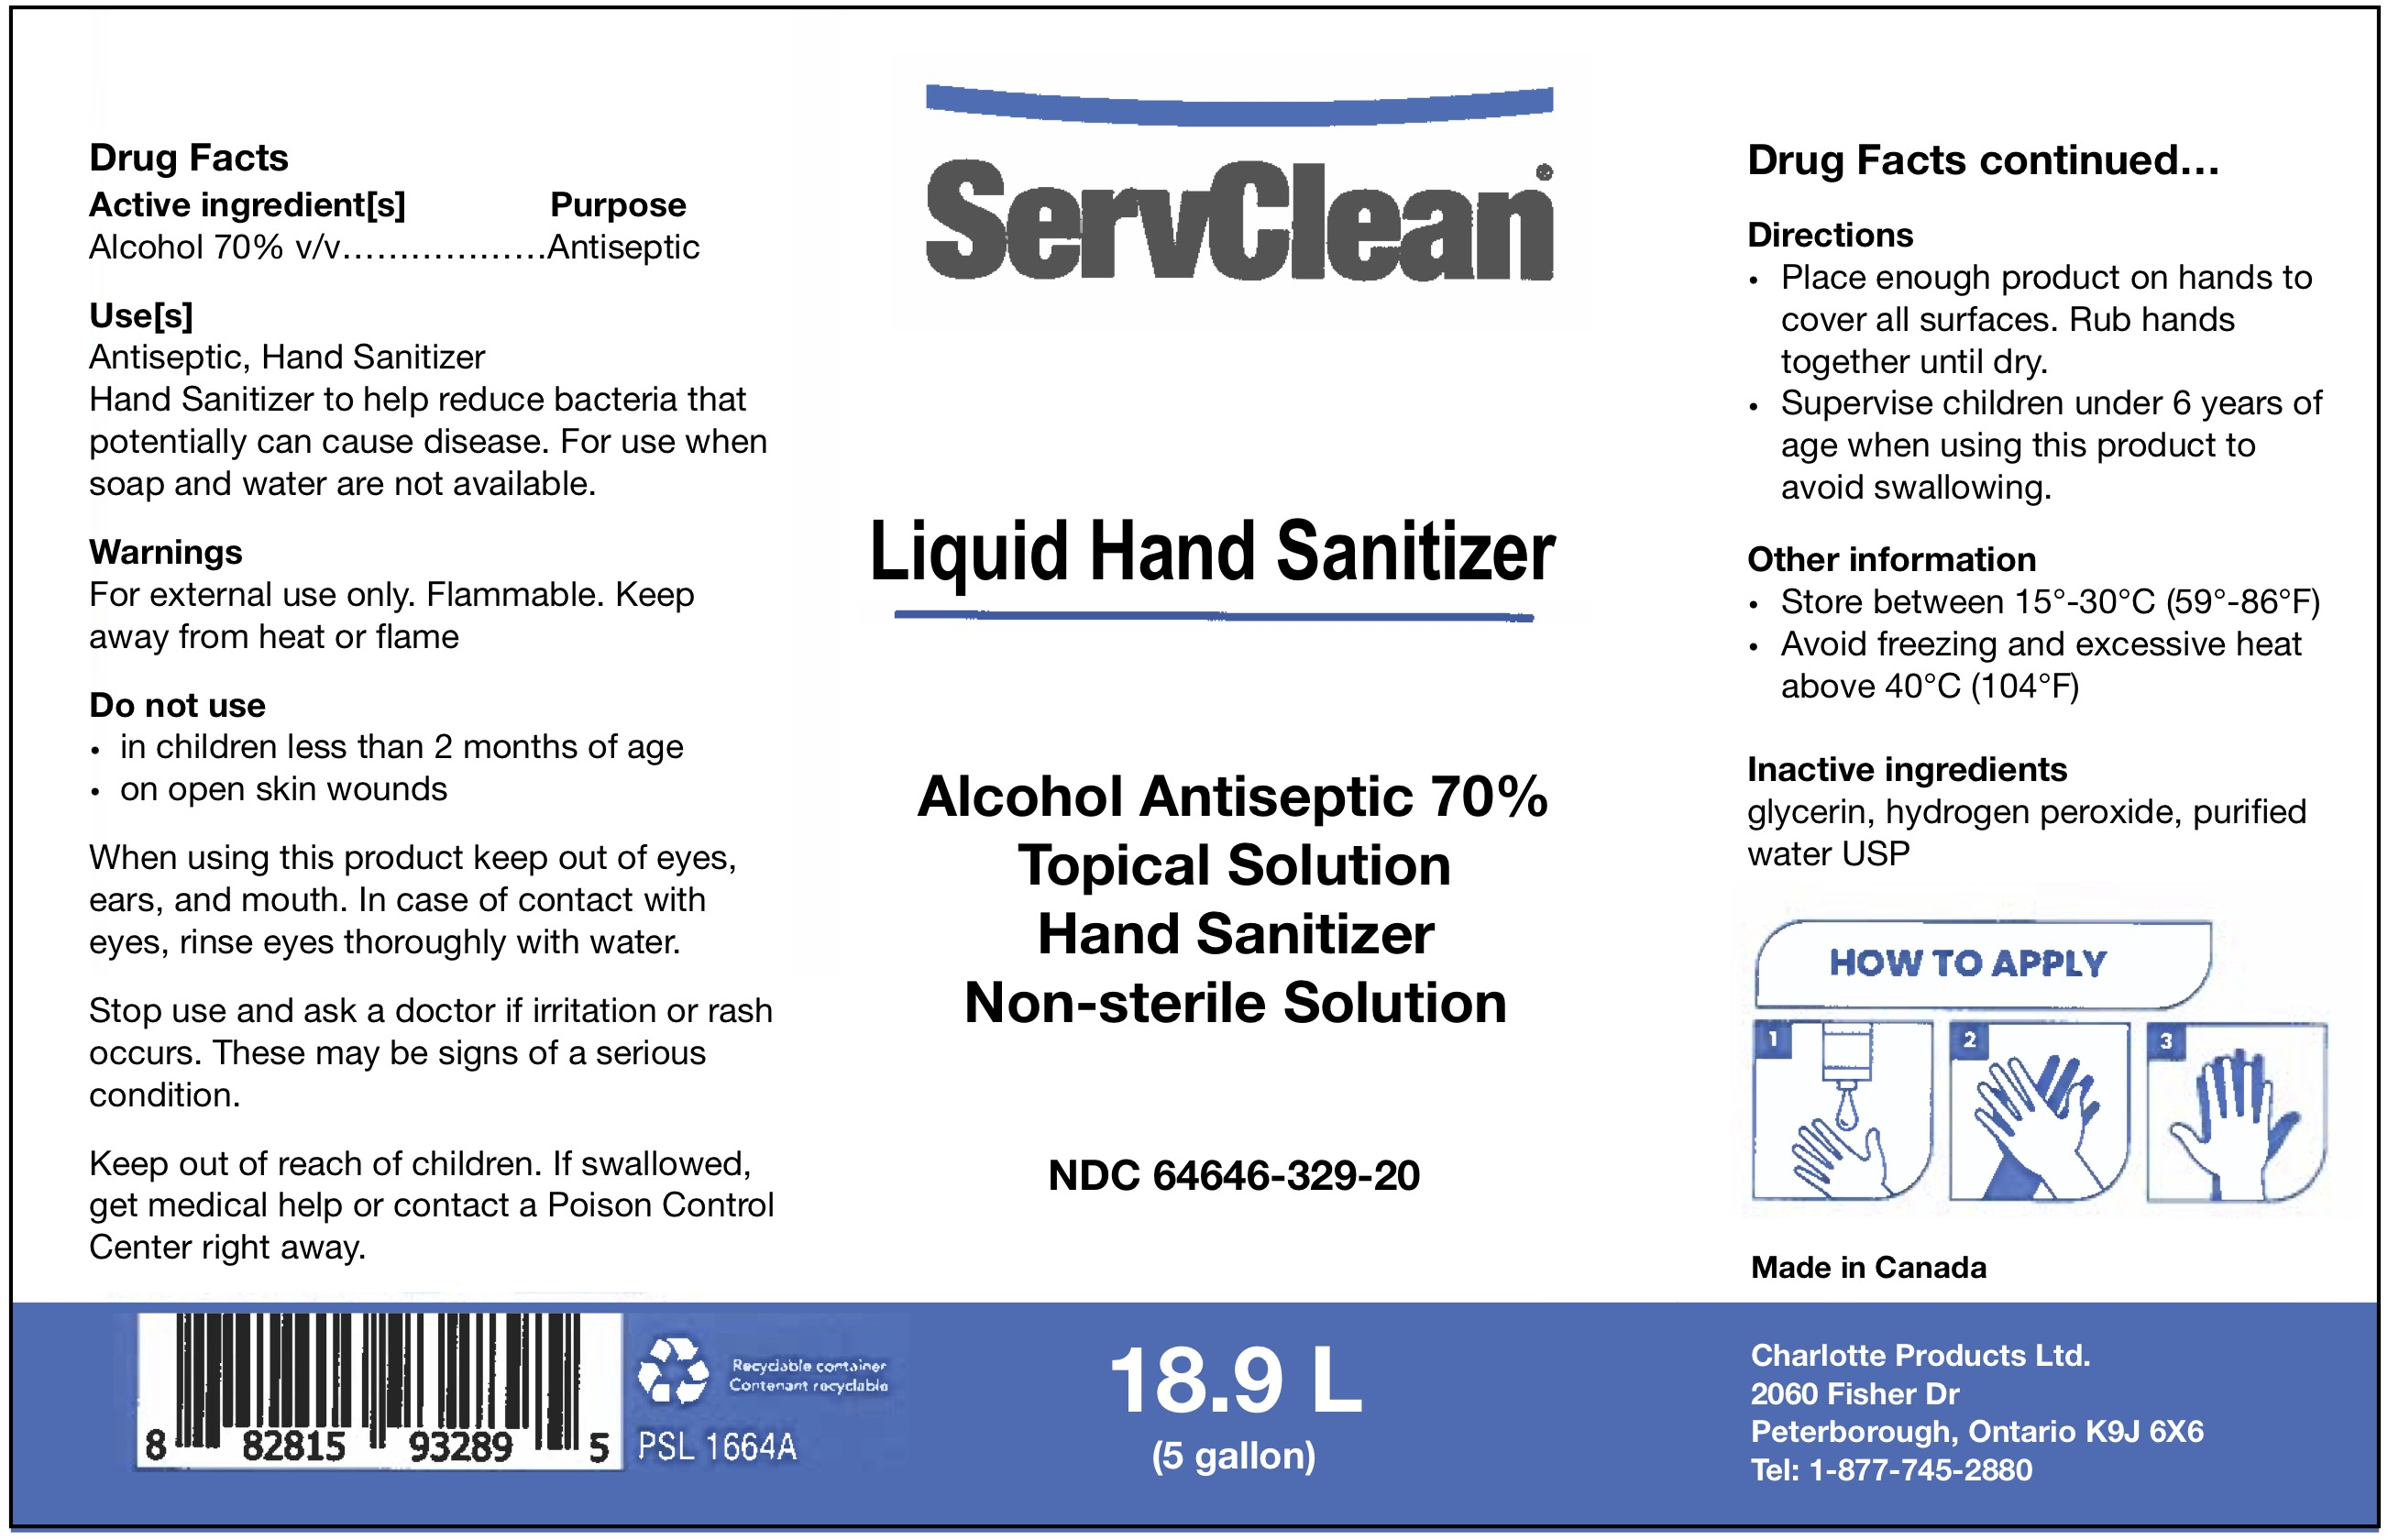 Liquid Hand Sanitizer Pail 64646-329-20